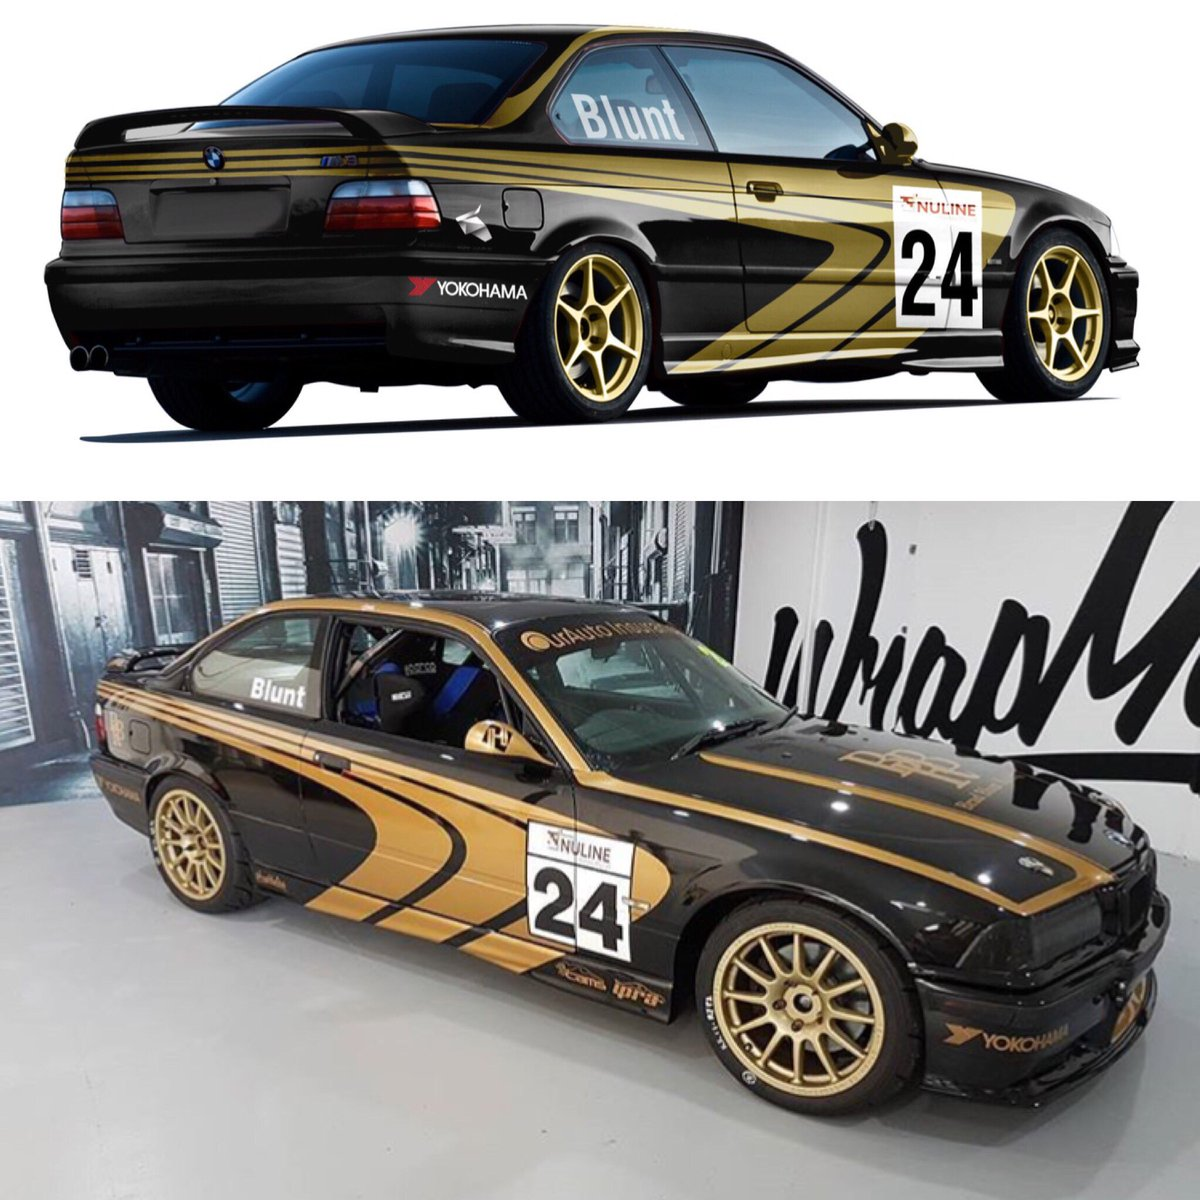 Gmail bmw theme - Jps Inspired M Stripes Was The Theme Thoughts Bmw M3 Https T Co Rggjdn895h